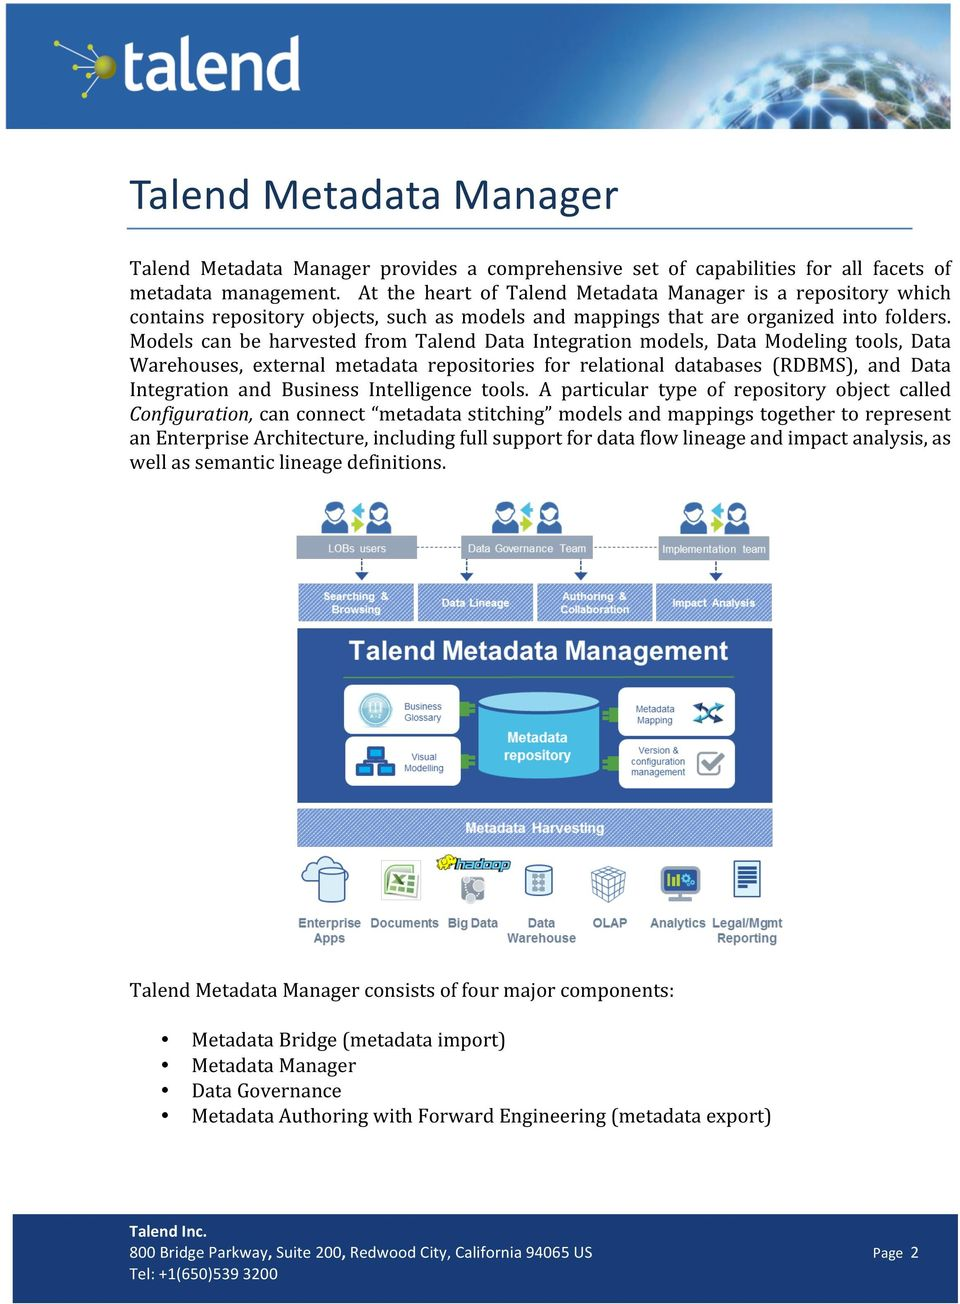 Models can be harvested from Talend Data Integration models, Data Modeling tools, Data Warehouses, external metadata repositories for relational databases (RDBMS), and Data Integration and Business